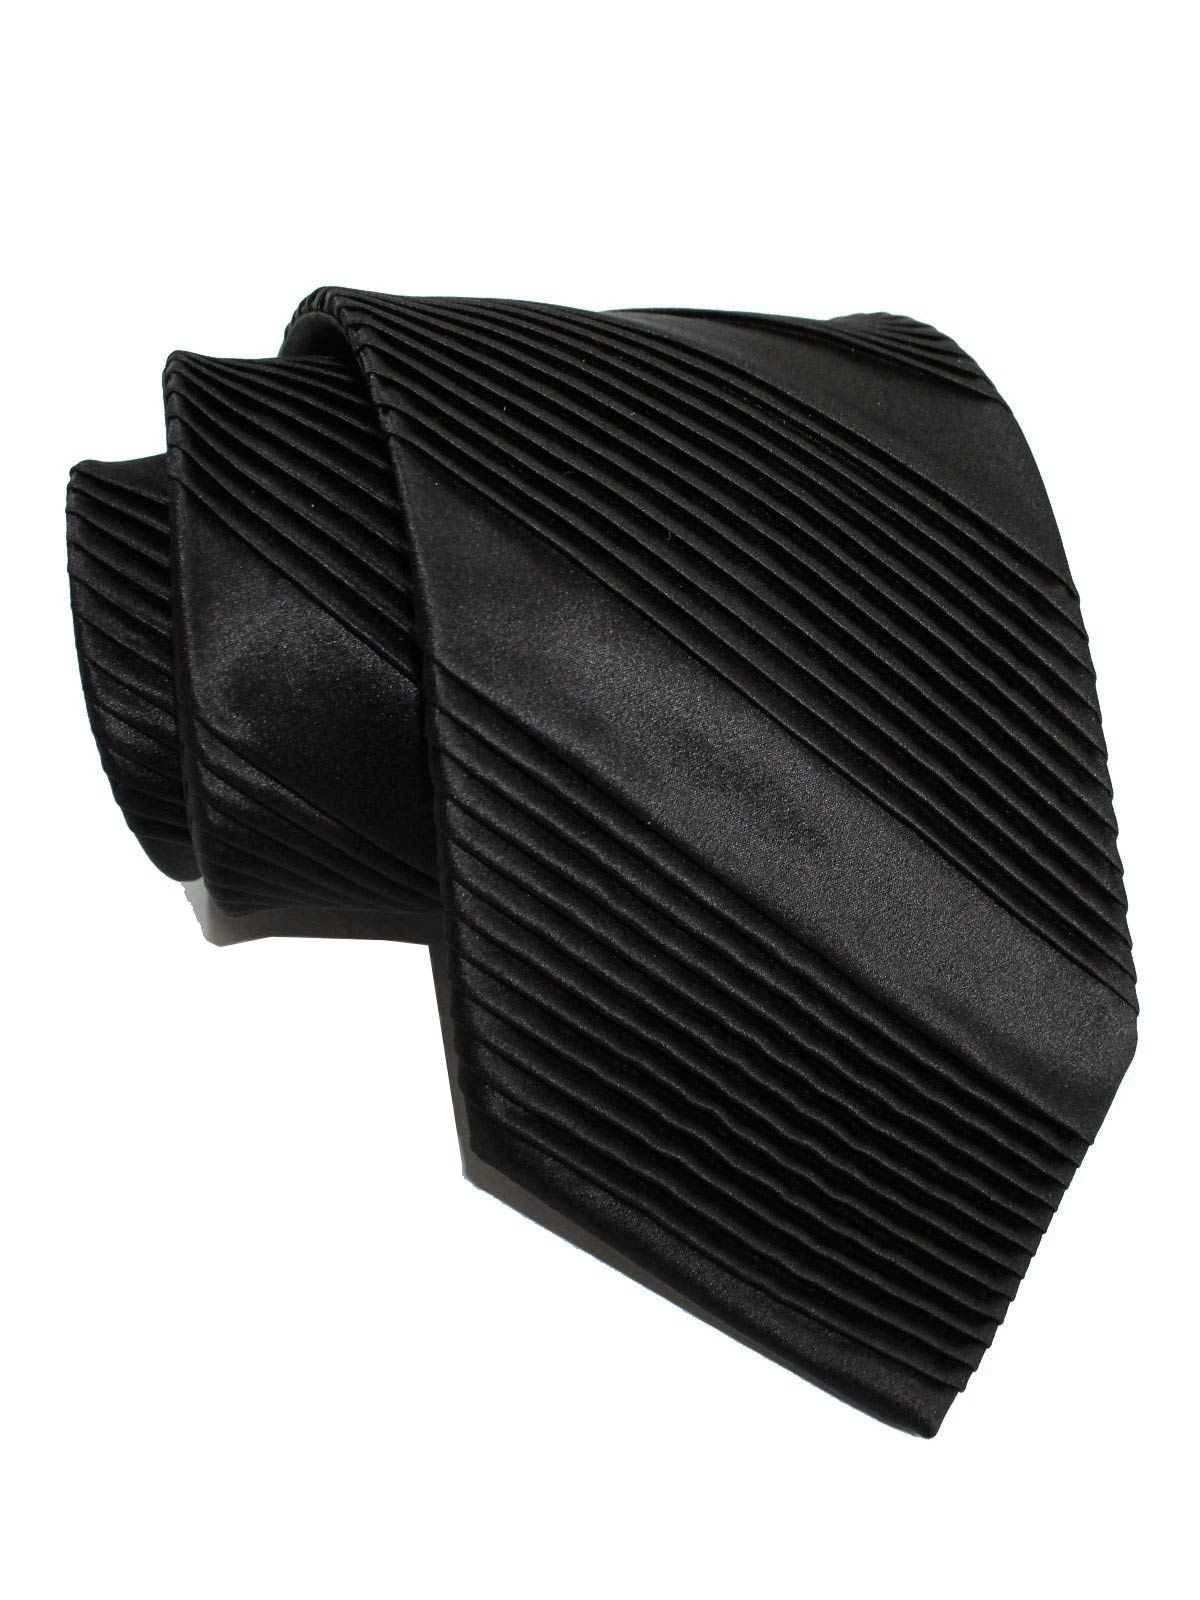 Stefano Ricci Pleated Silk Tie Black Solid Design - Wide Necktie